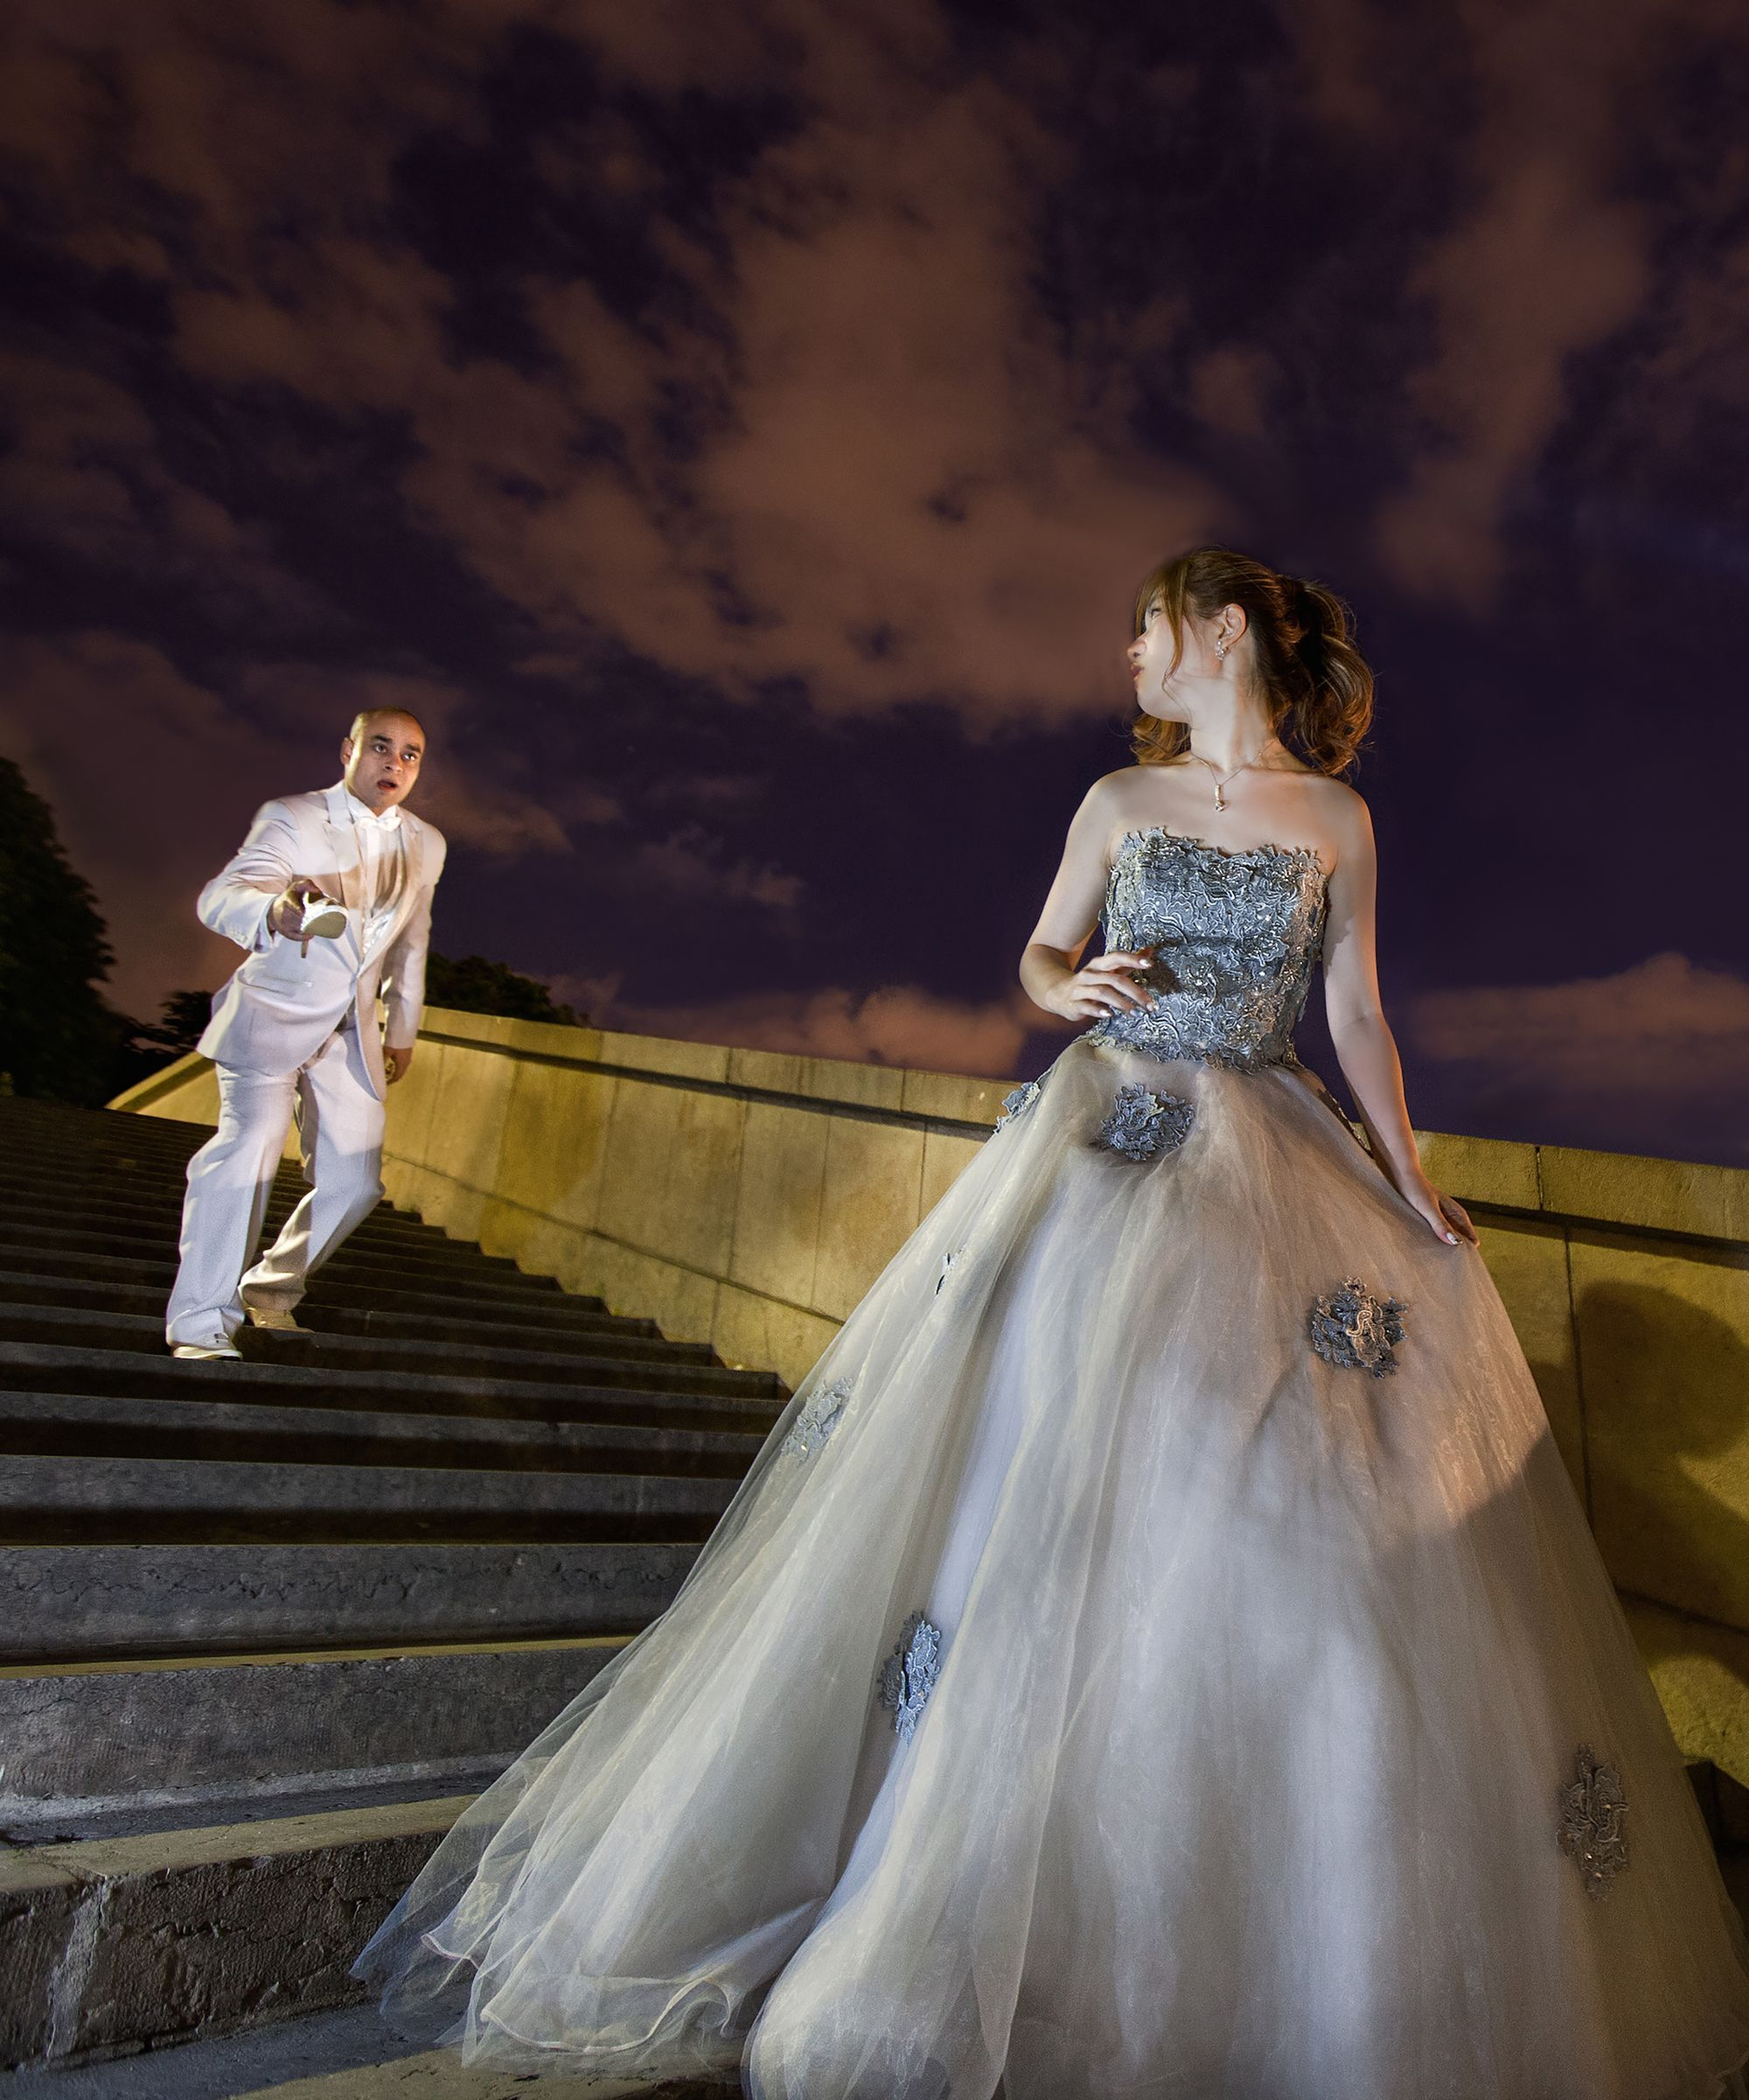 Disney Themed Wedding Dresses: This Disney-Themed Wedding Is Blowing Our Minds